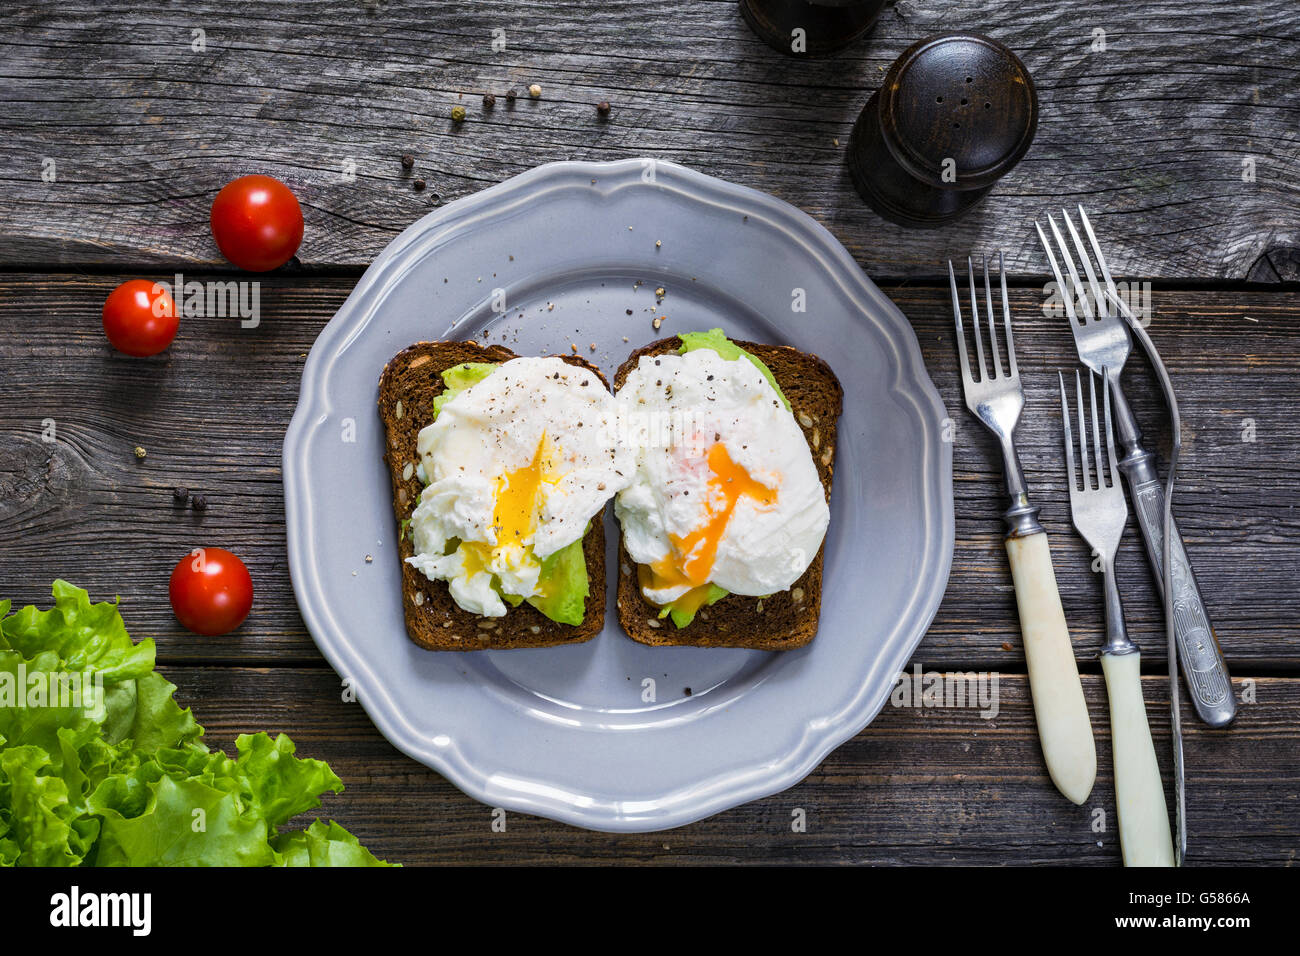 Avocado poached egg toasts on plate on dark rustic wooden background, overhead view. Healthy breakfast, lunch or - Stock Image